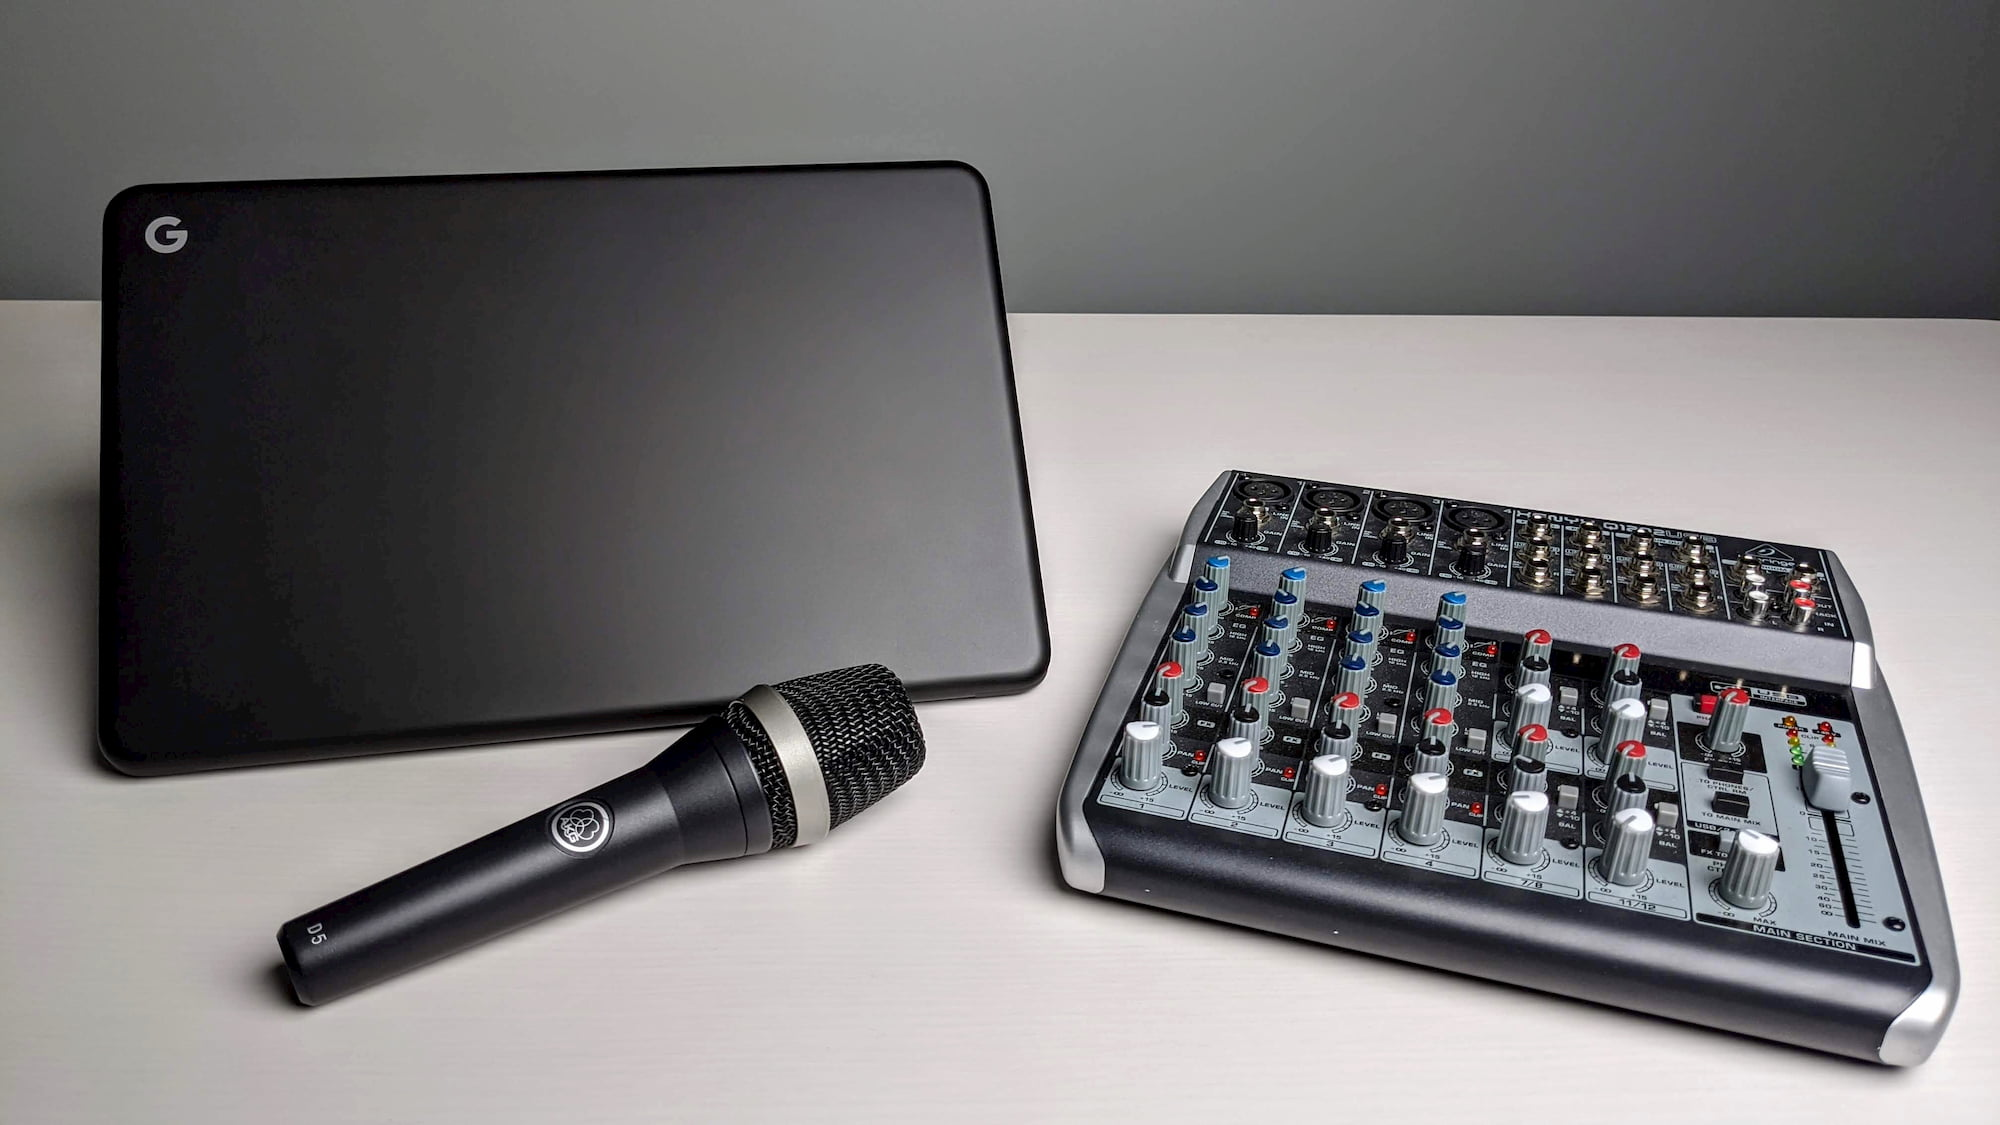 Microphone support finally comes to Linux on Chromebooks